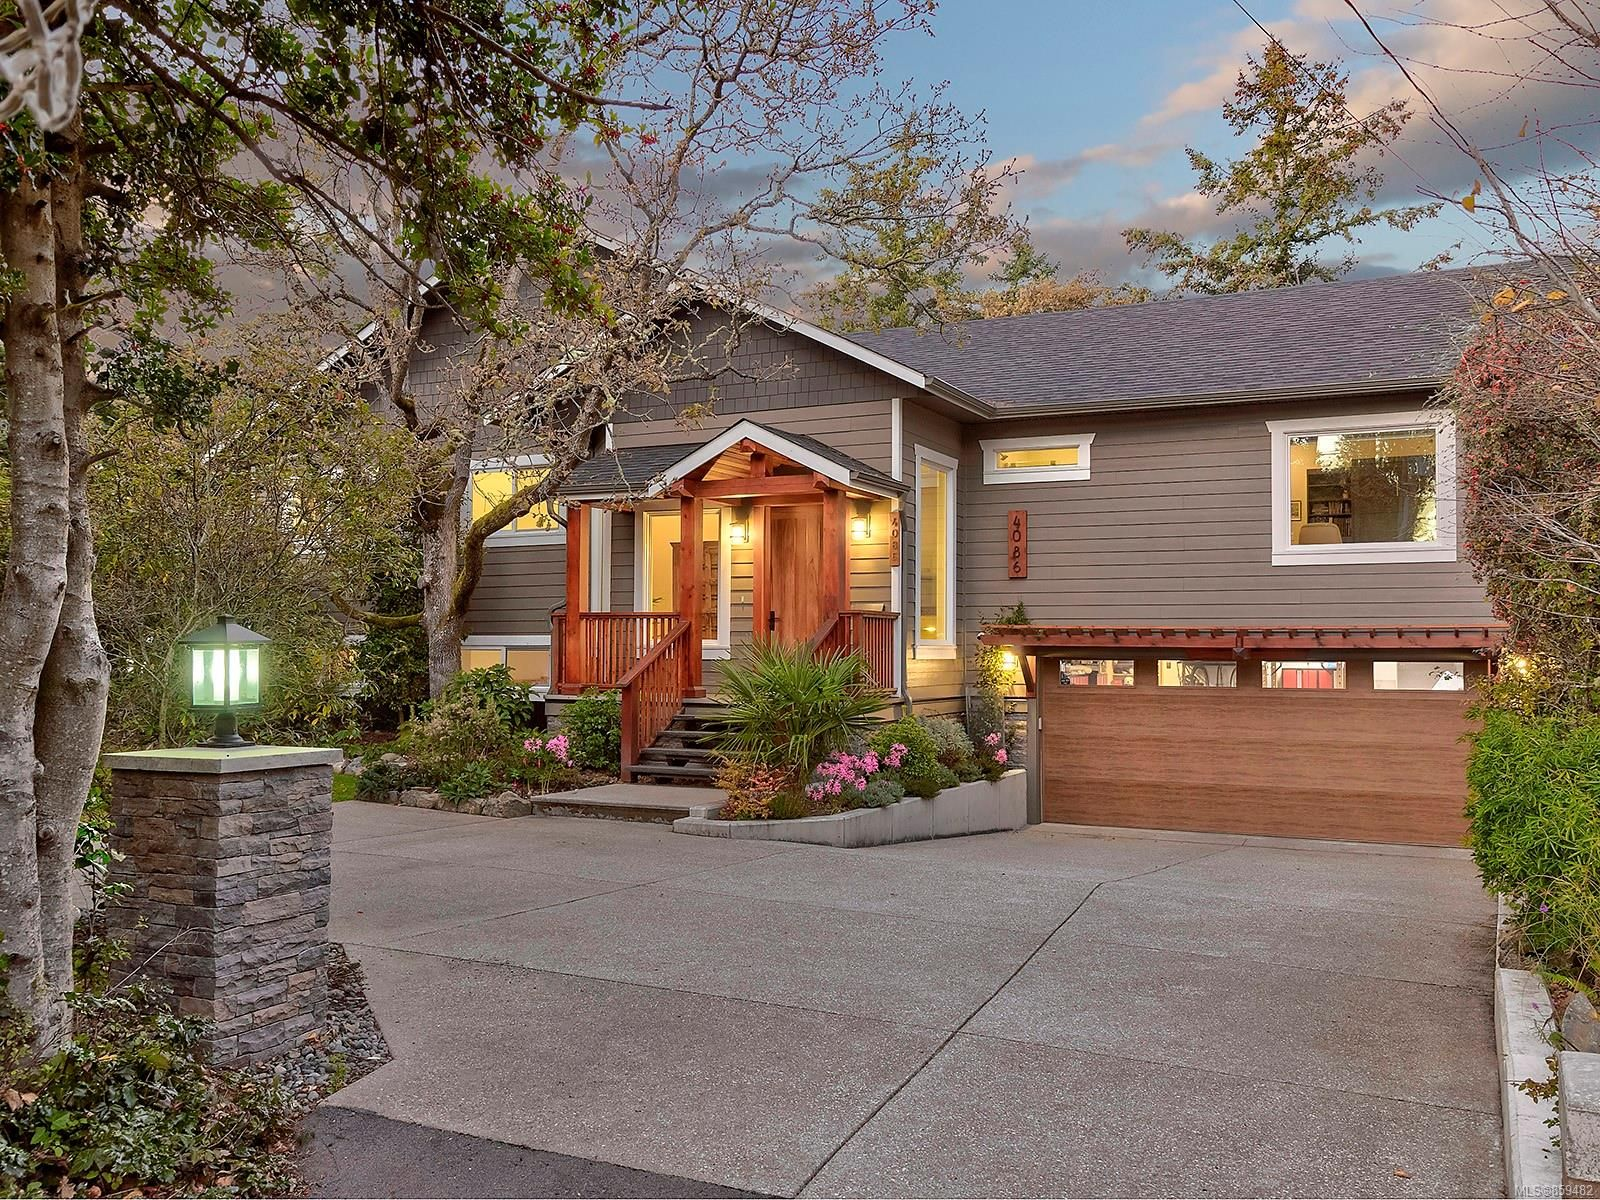 Photo 44: Photos: 4086 Monarch Pl in : SE Arbutus House for sale (Saanich East)  : MLS®# 859482